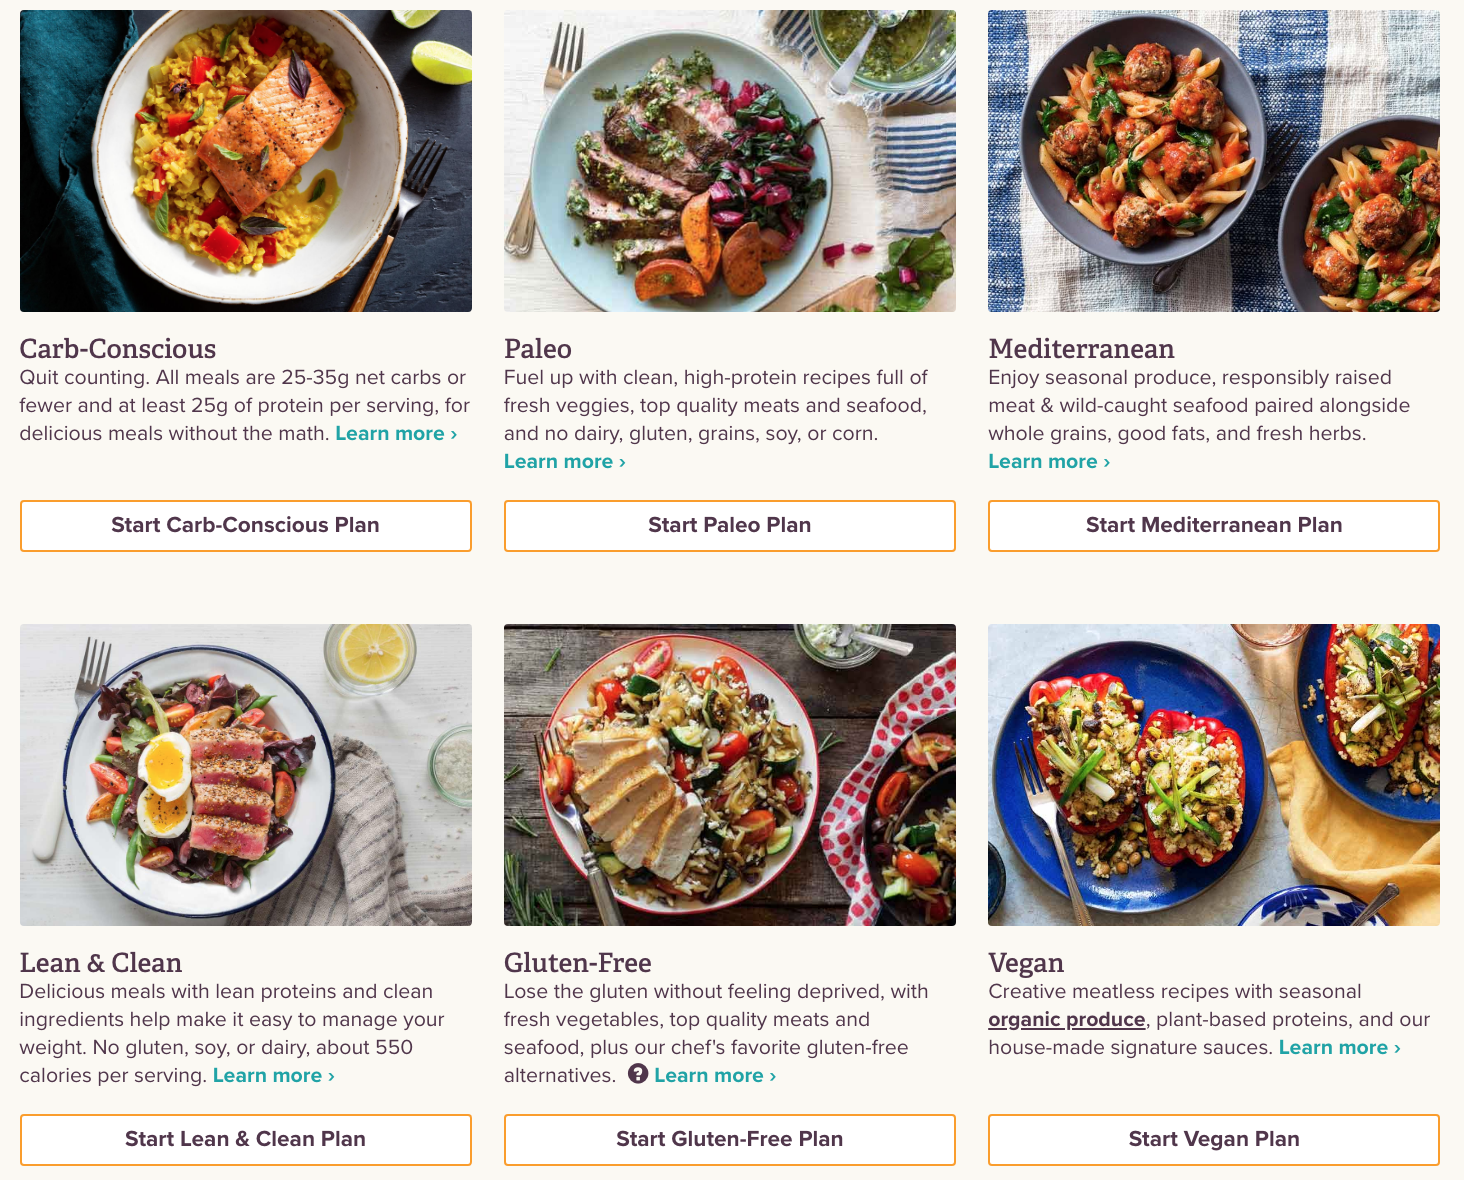 menus offered by blue apron competitor sun basket